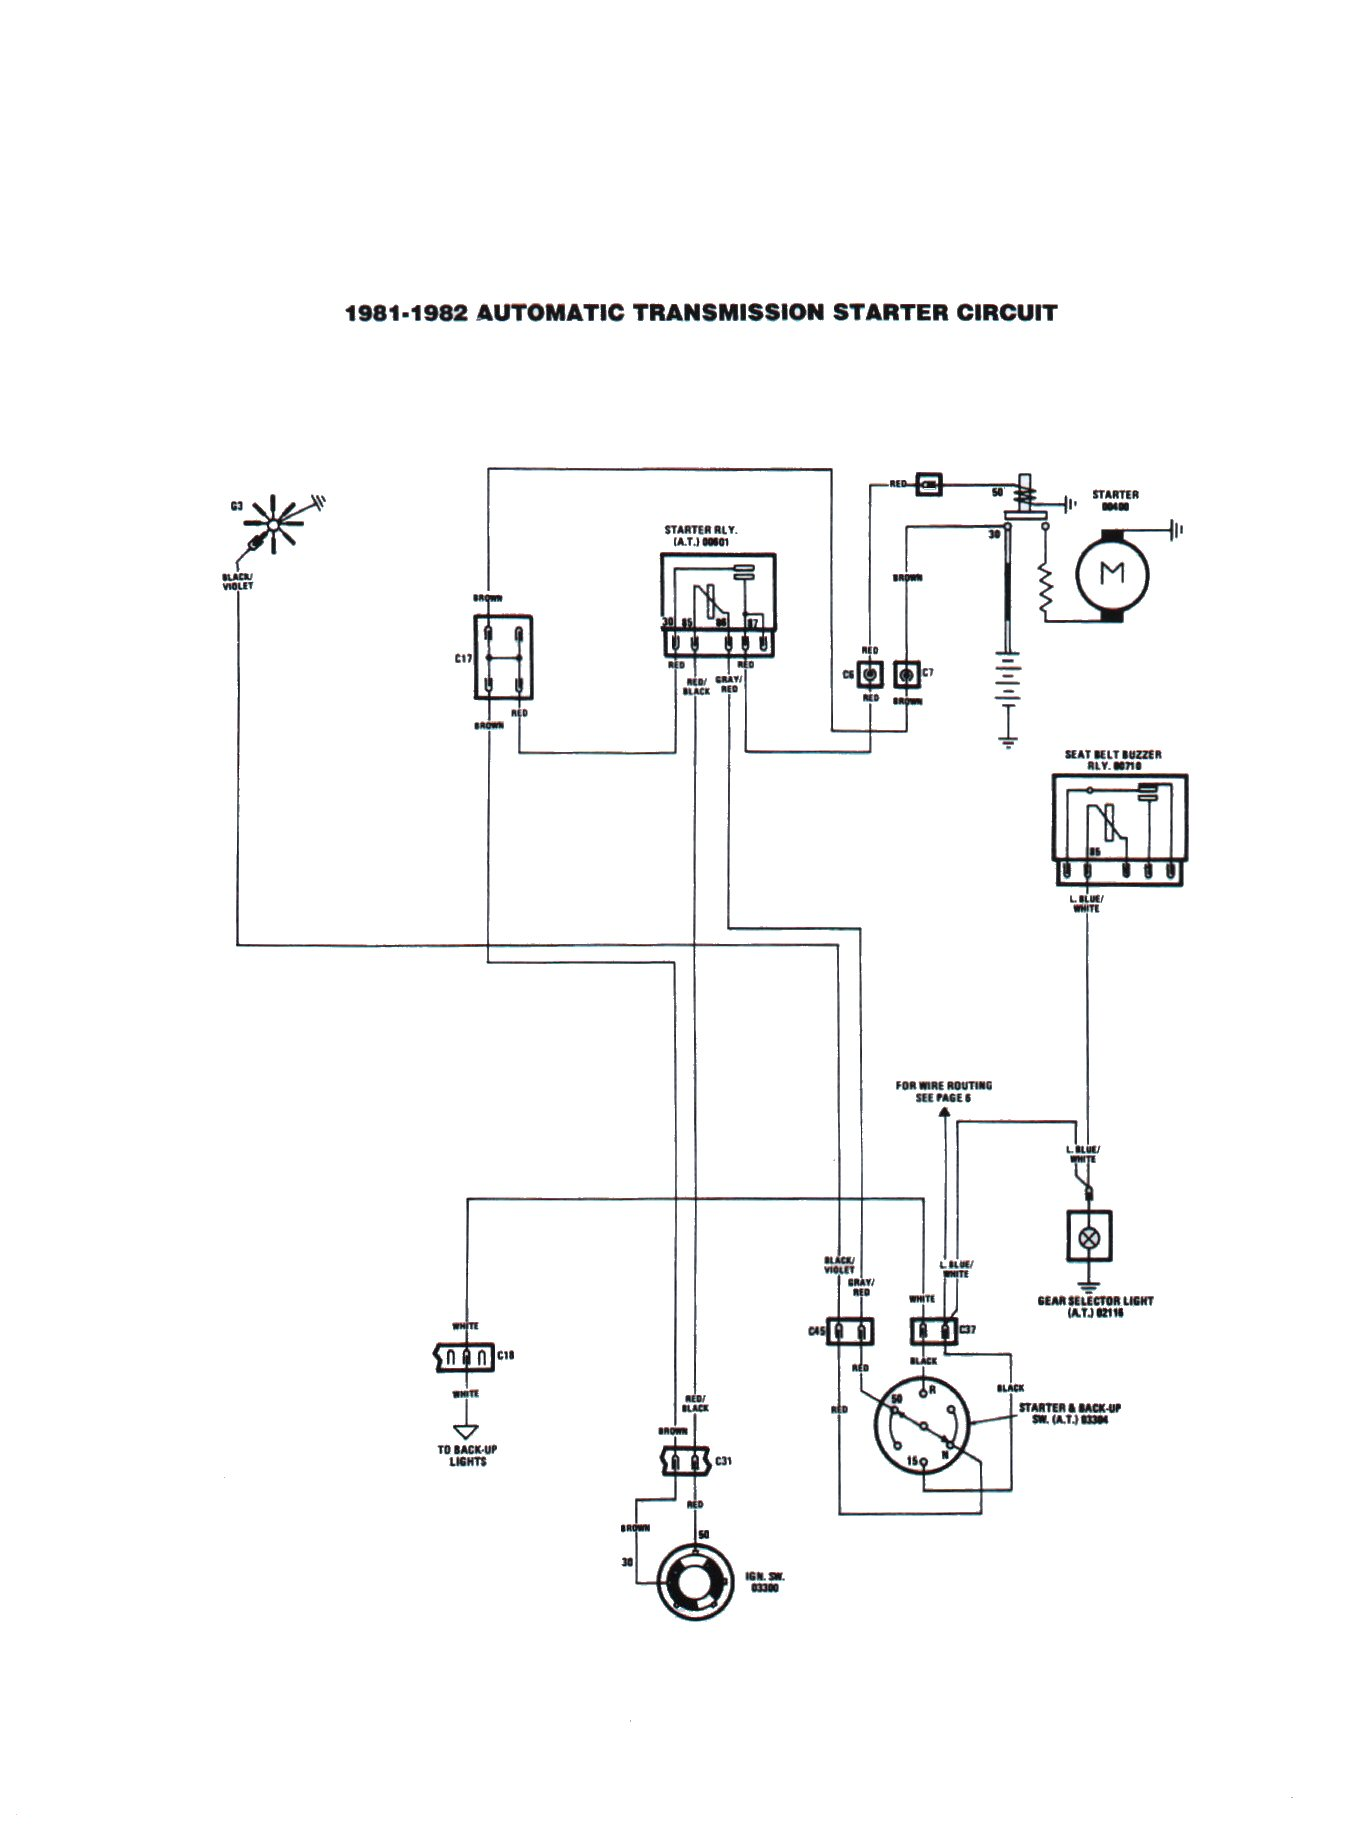 Fiat 124 Spider Spiderswebnl On Repeated Request Electrical Speakers Wiring Diagram Automatic Transmission Starter Circuit